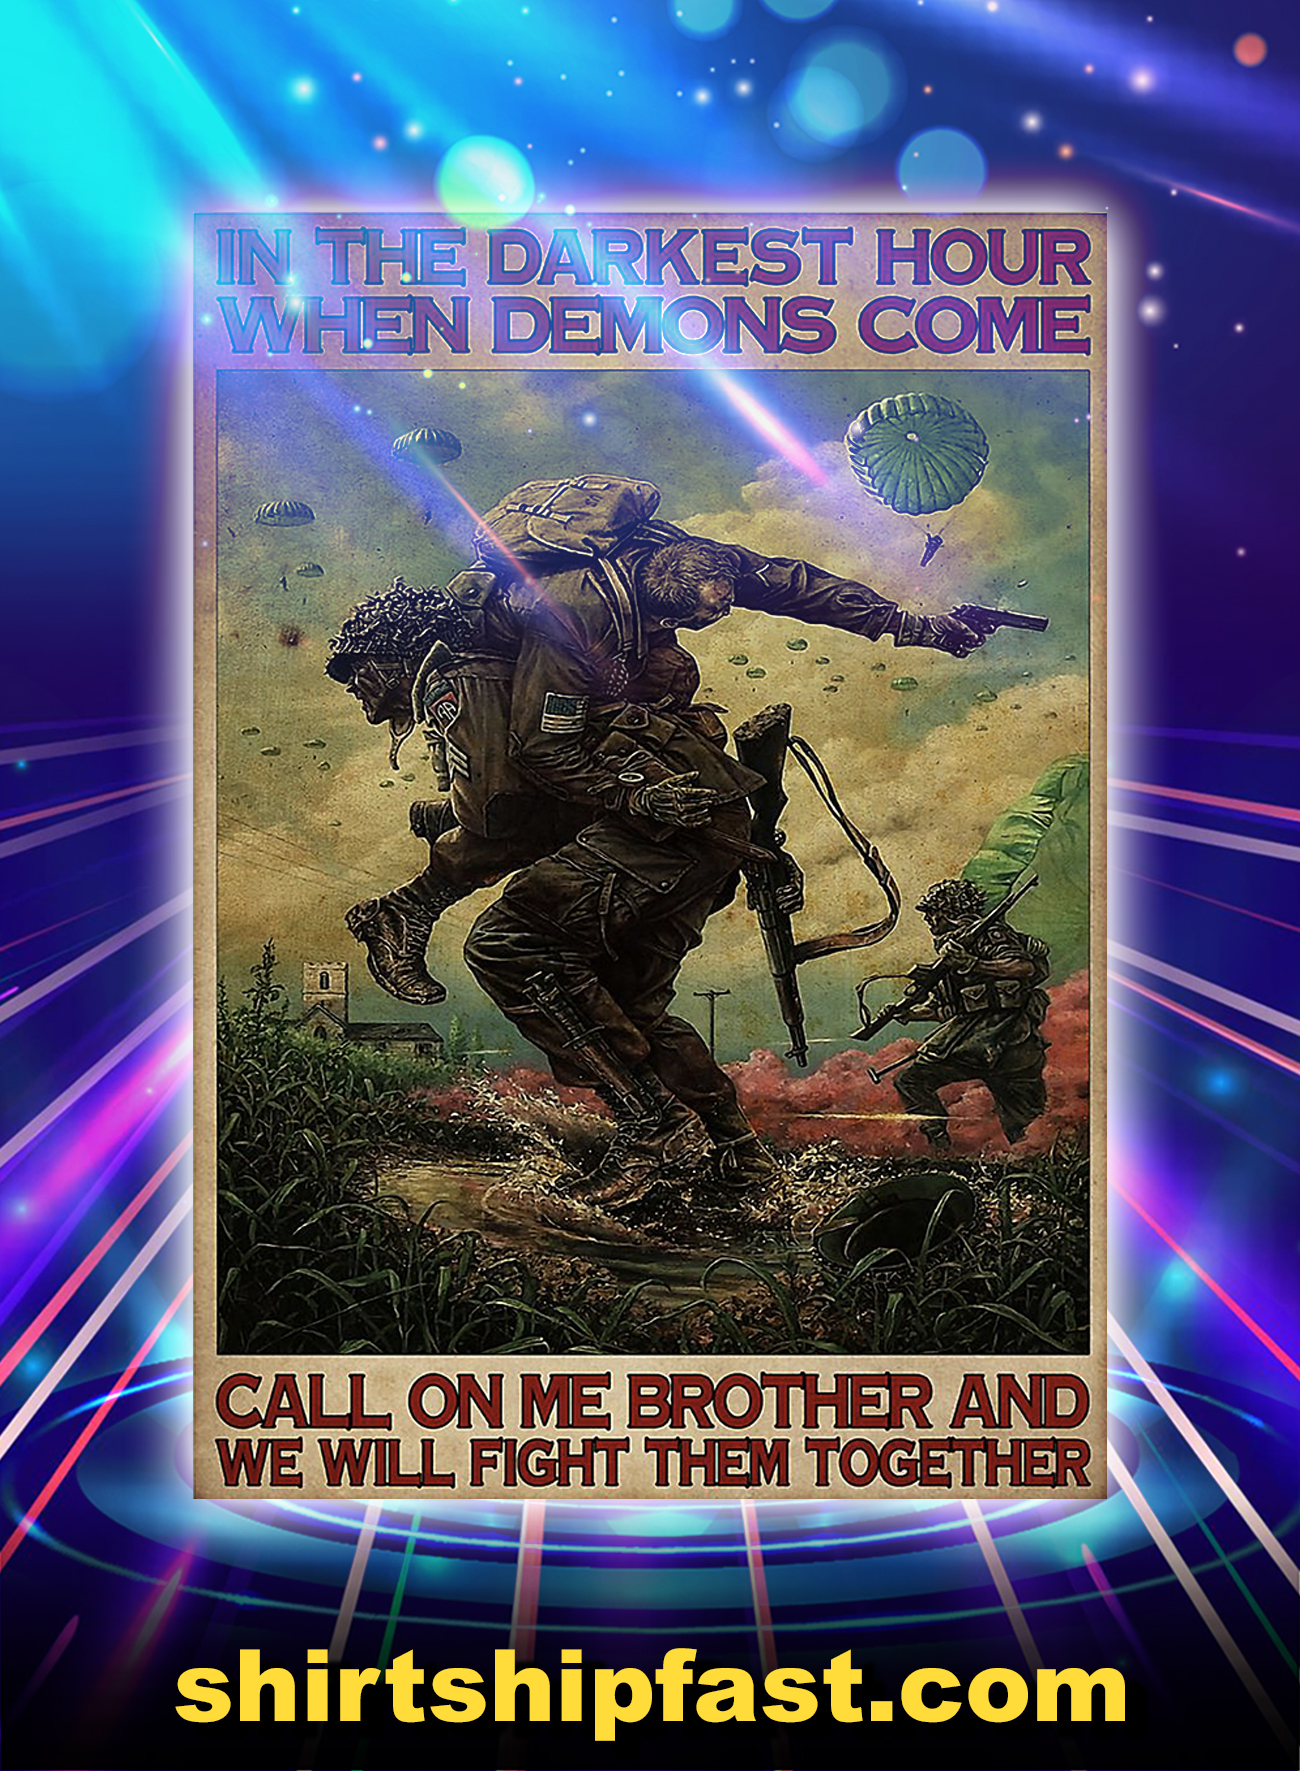 Military in the dark hour when demons come poster - A4